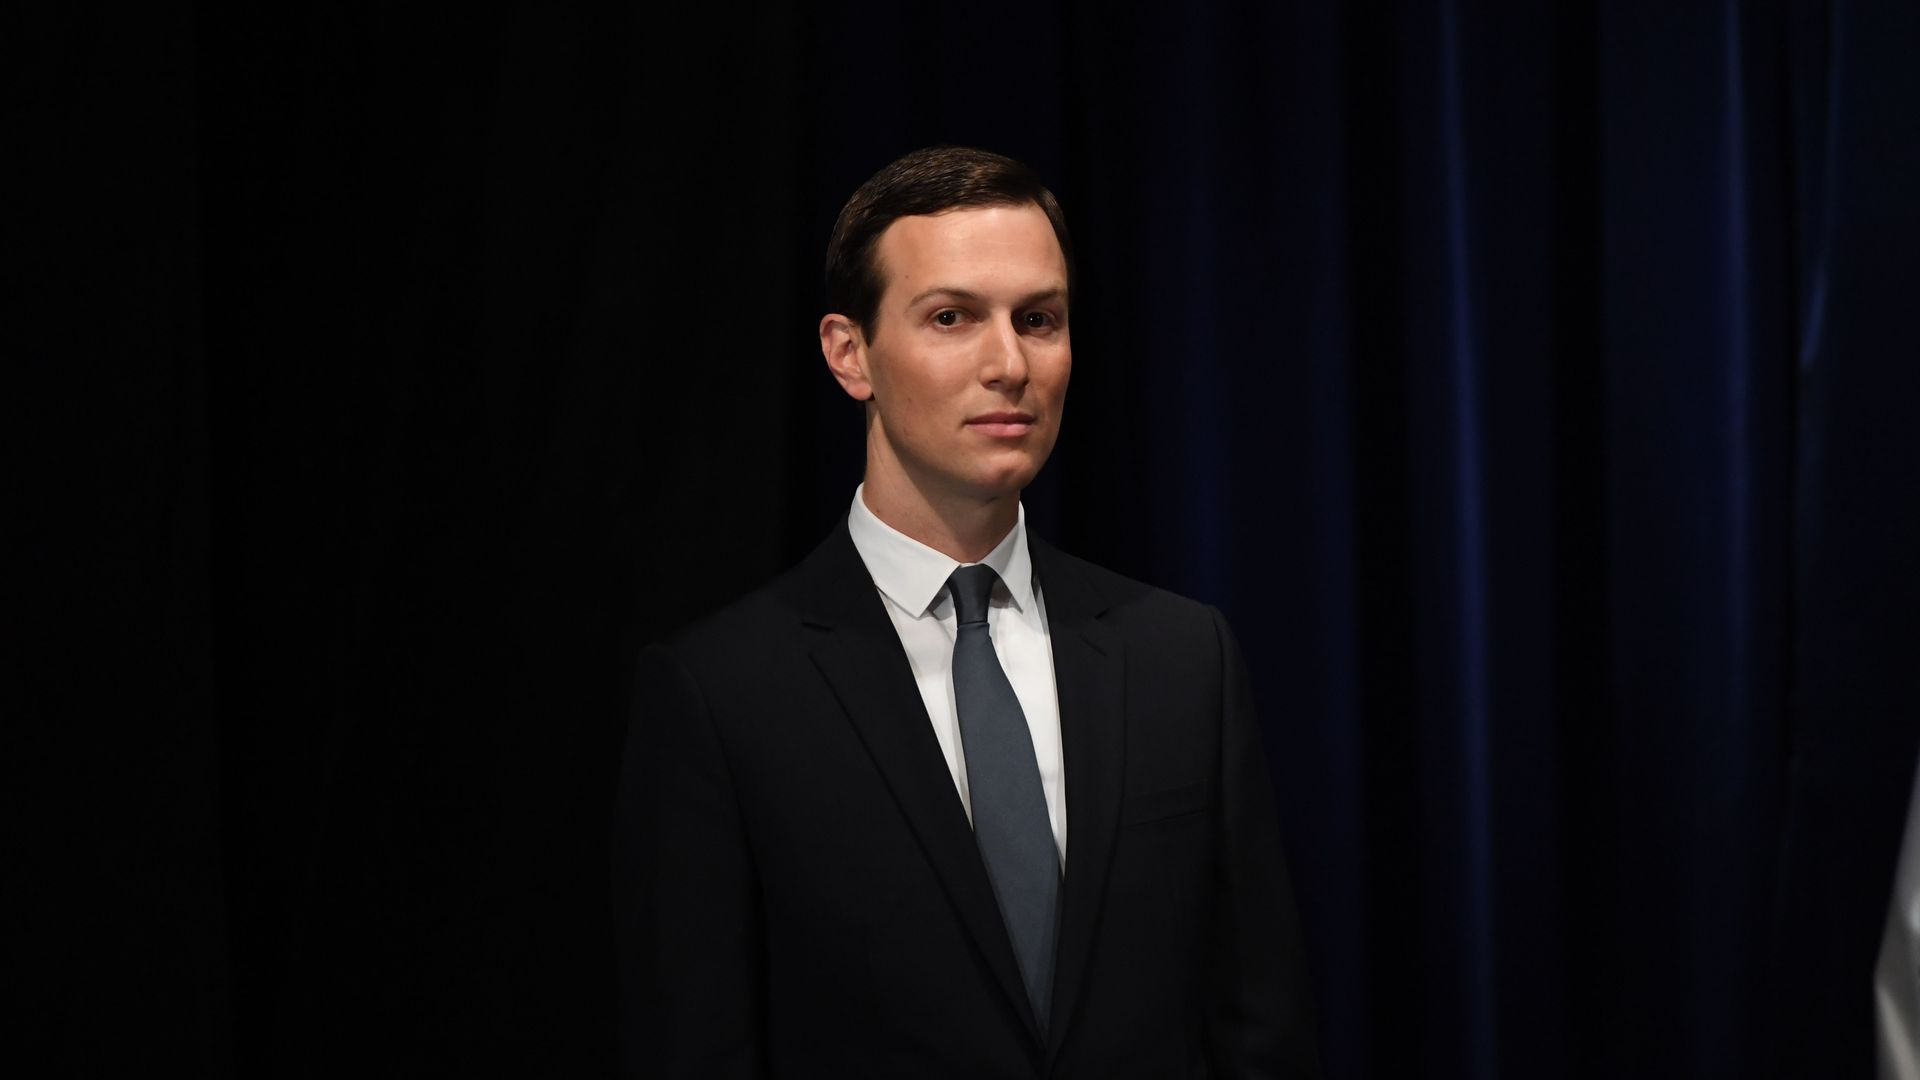 Report: Jared Kushner to give records to House Judiciary Committee